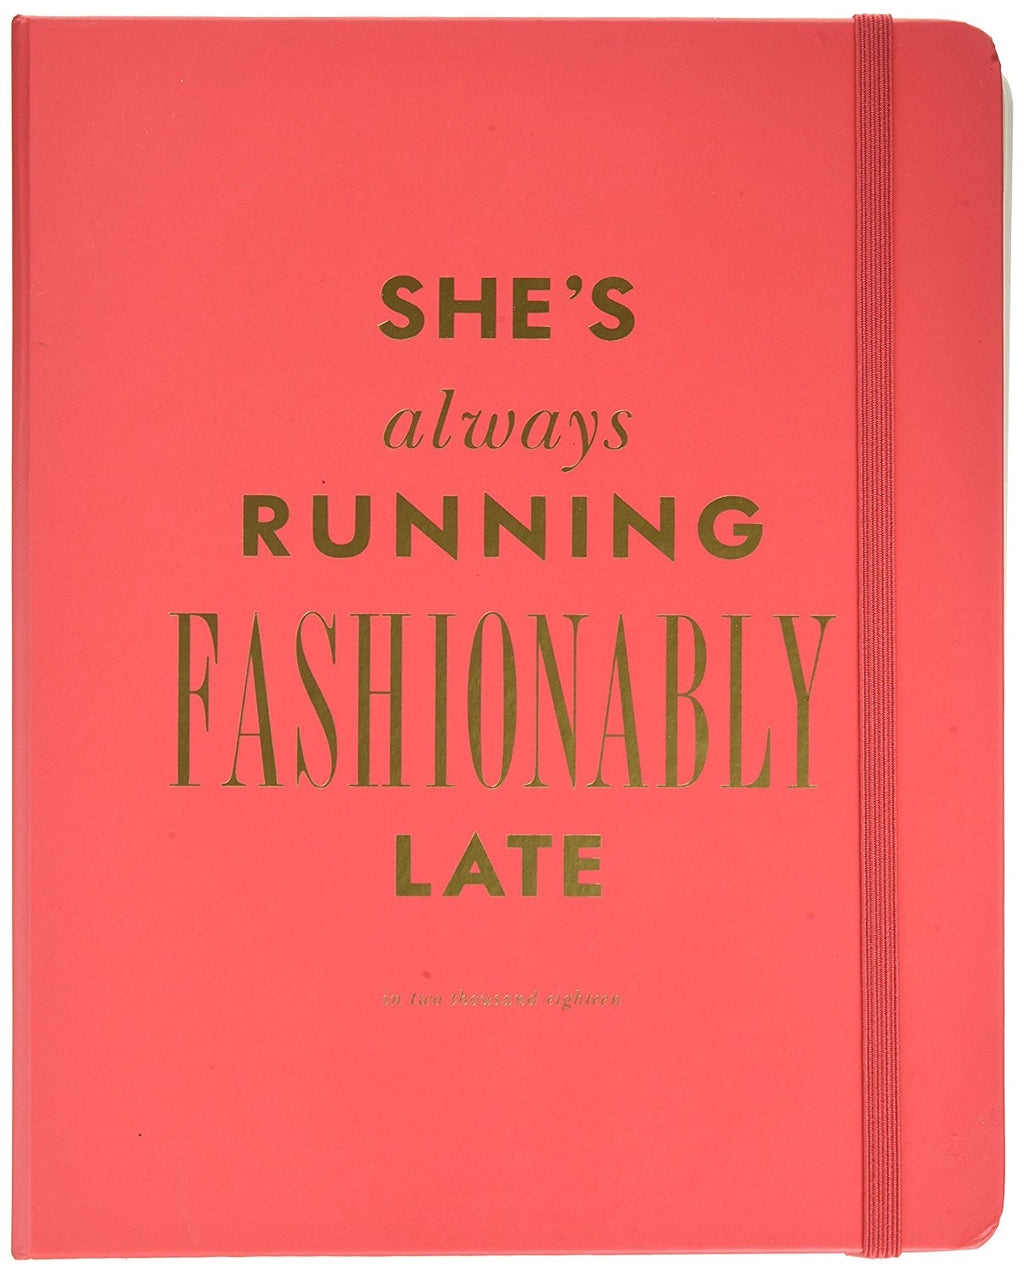 Kate Spade New York 17-Month Large Agenda Academic Calender - Fashionably Late